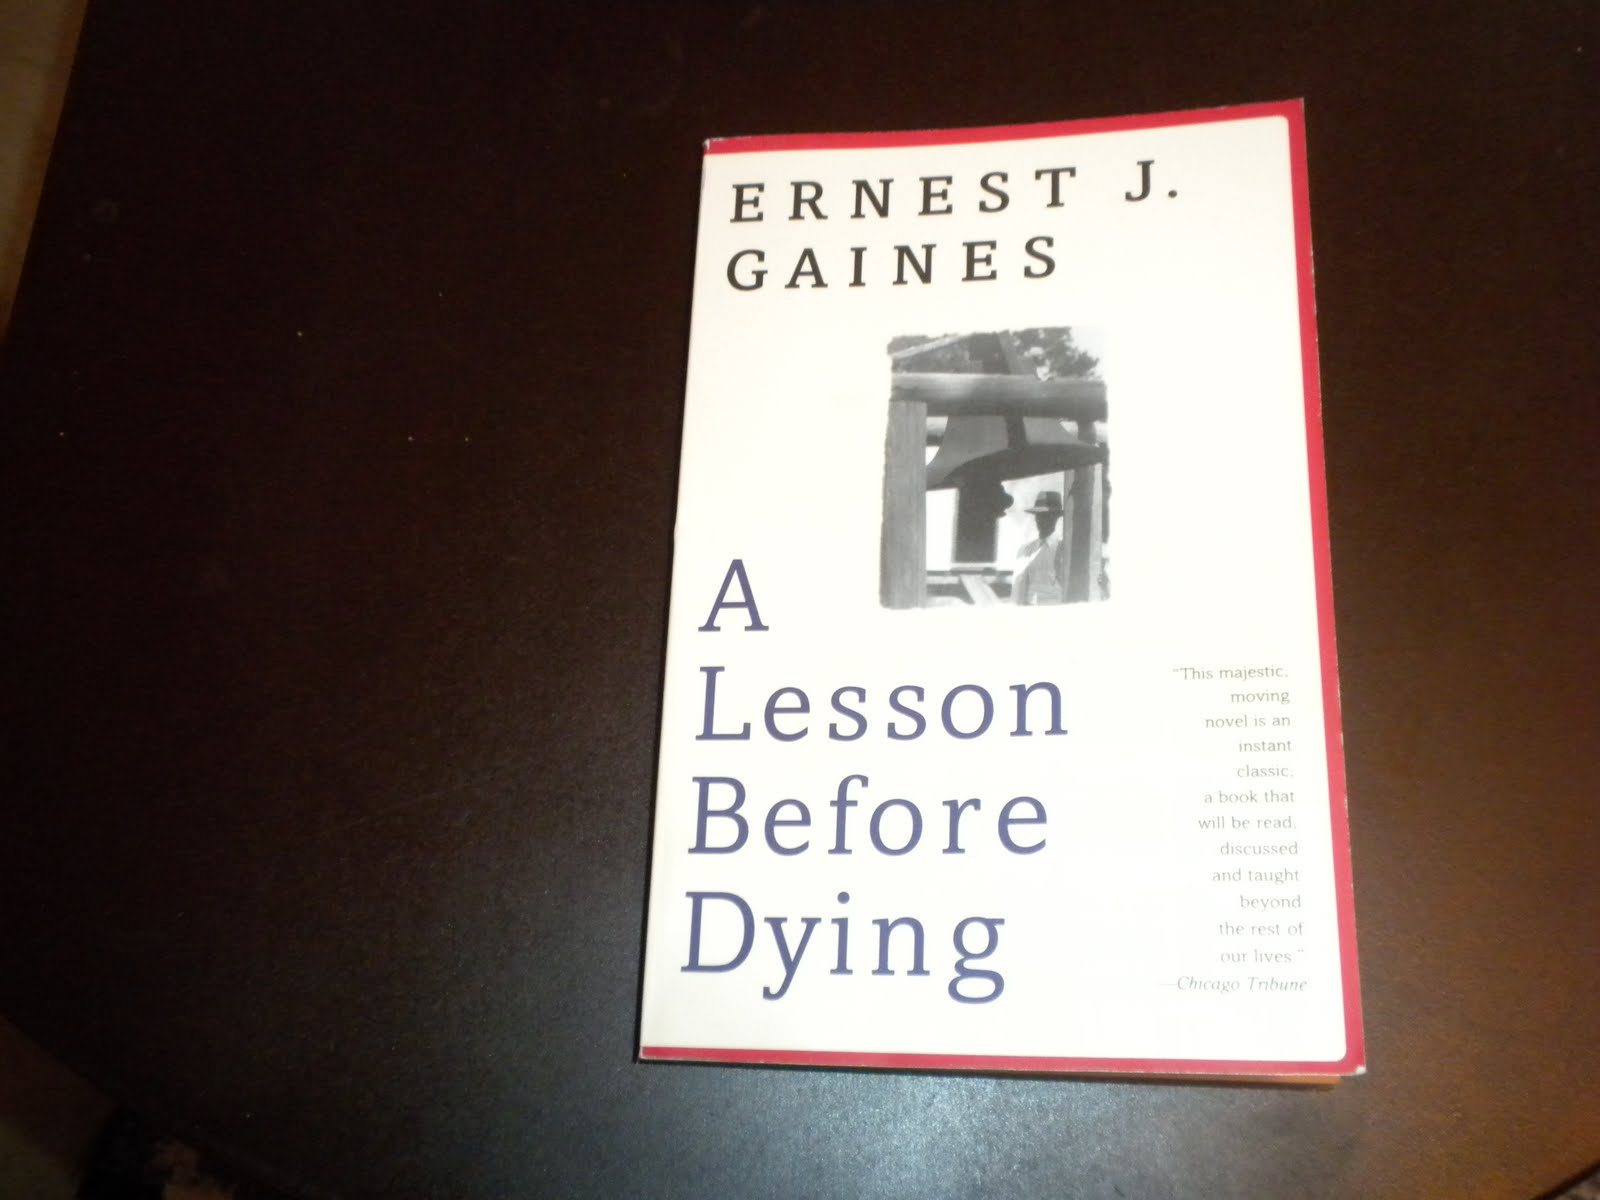 an analysis of ernest gaines a lesson before dying This is a study guide for the book a lesson before dying written by ernest j gaines the reader is given a unique outlook on the status of african americans in the south, after world war ii and before the civil rights movement.